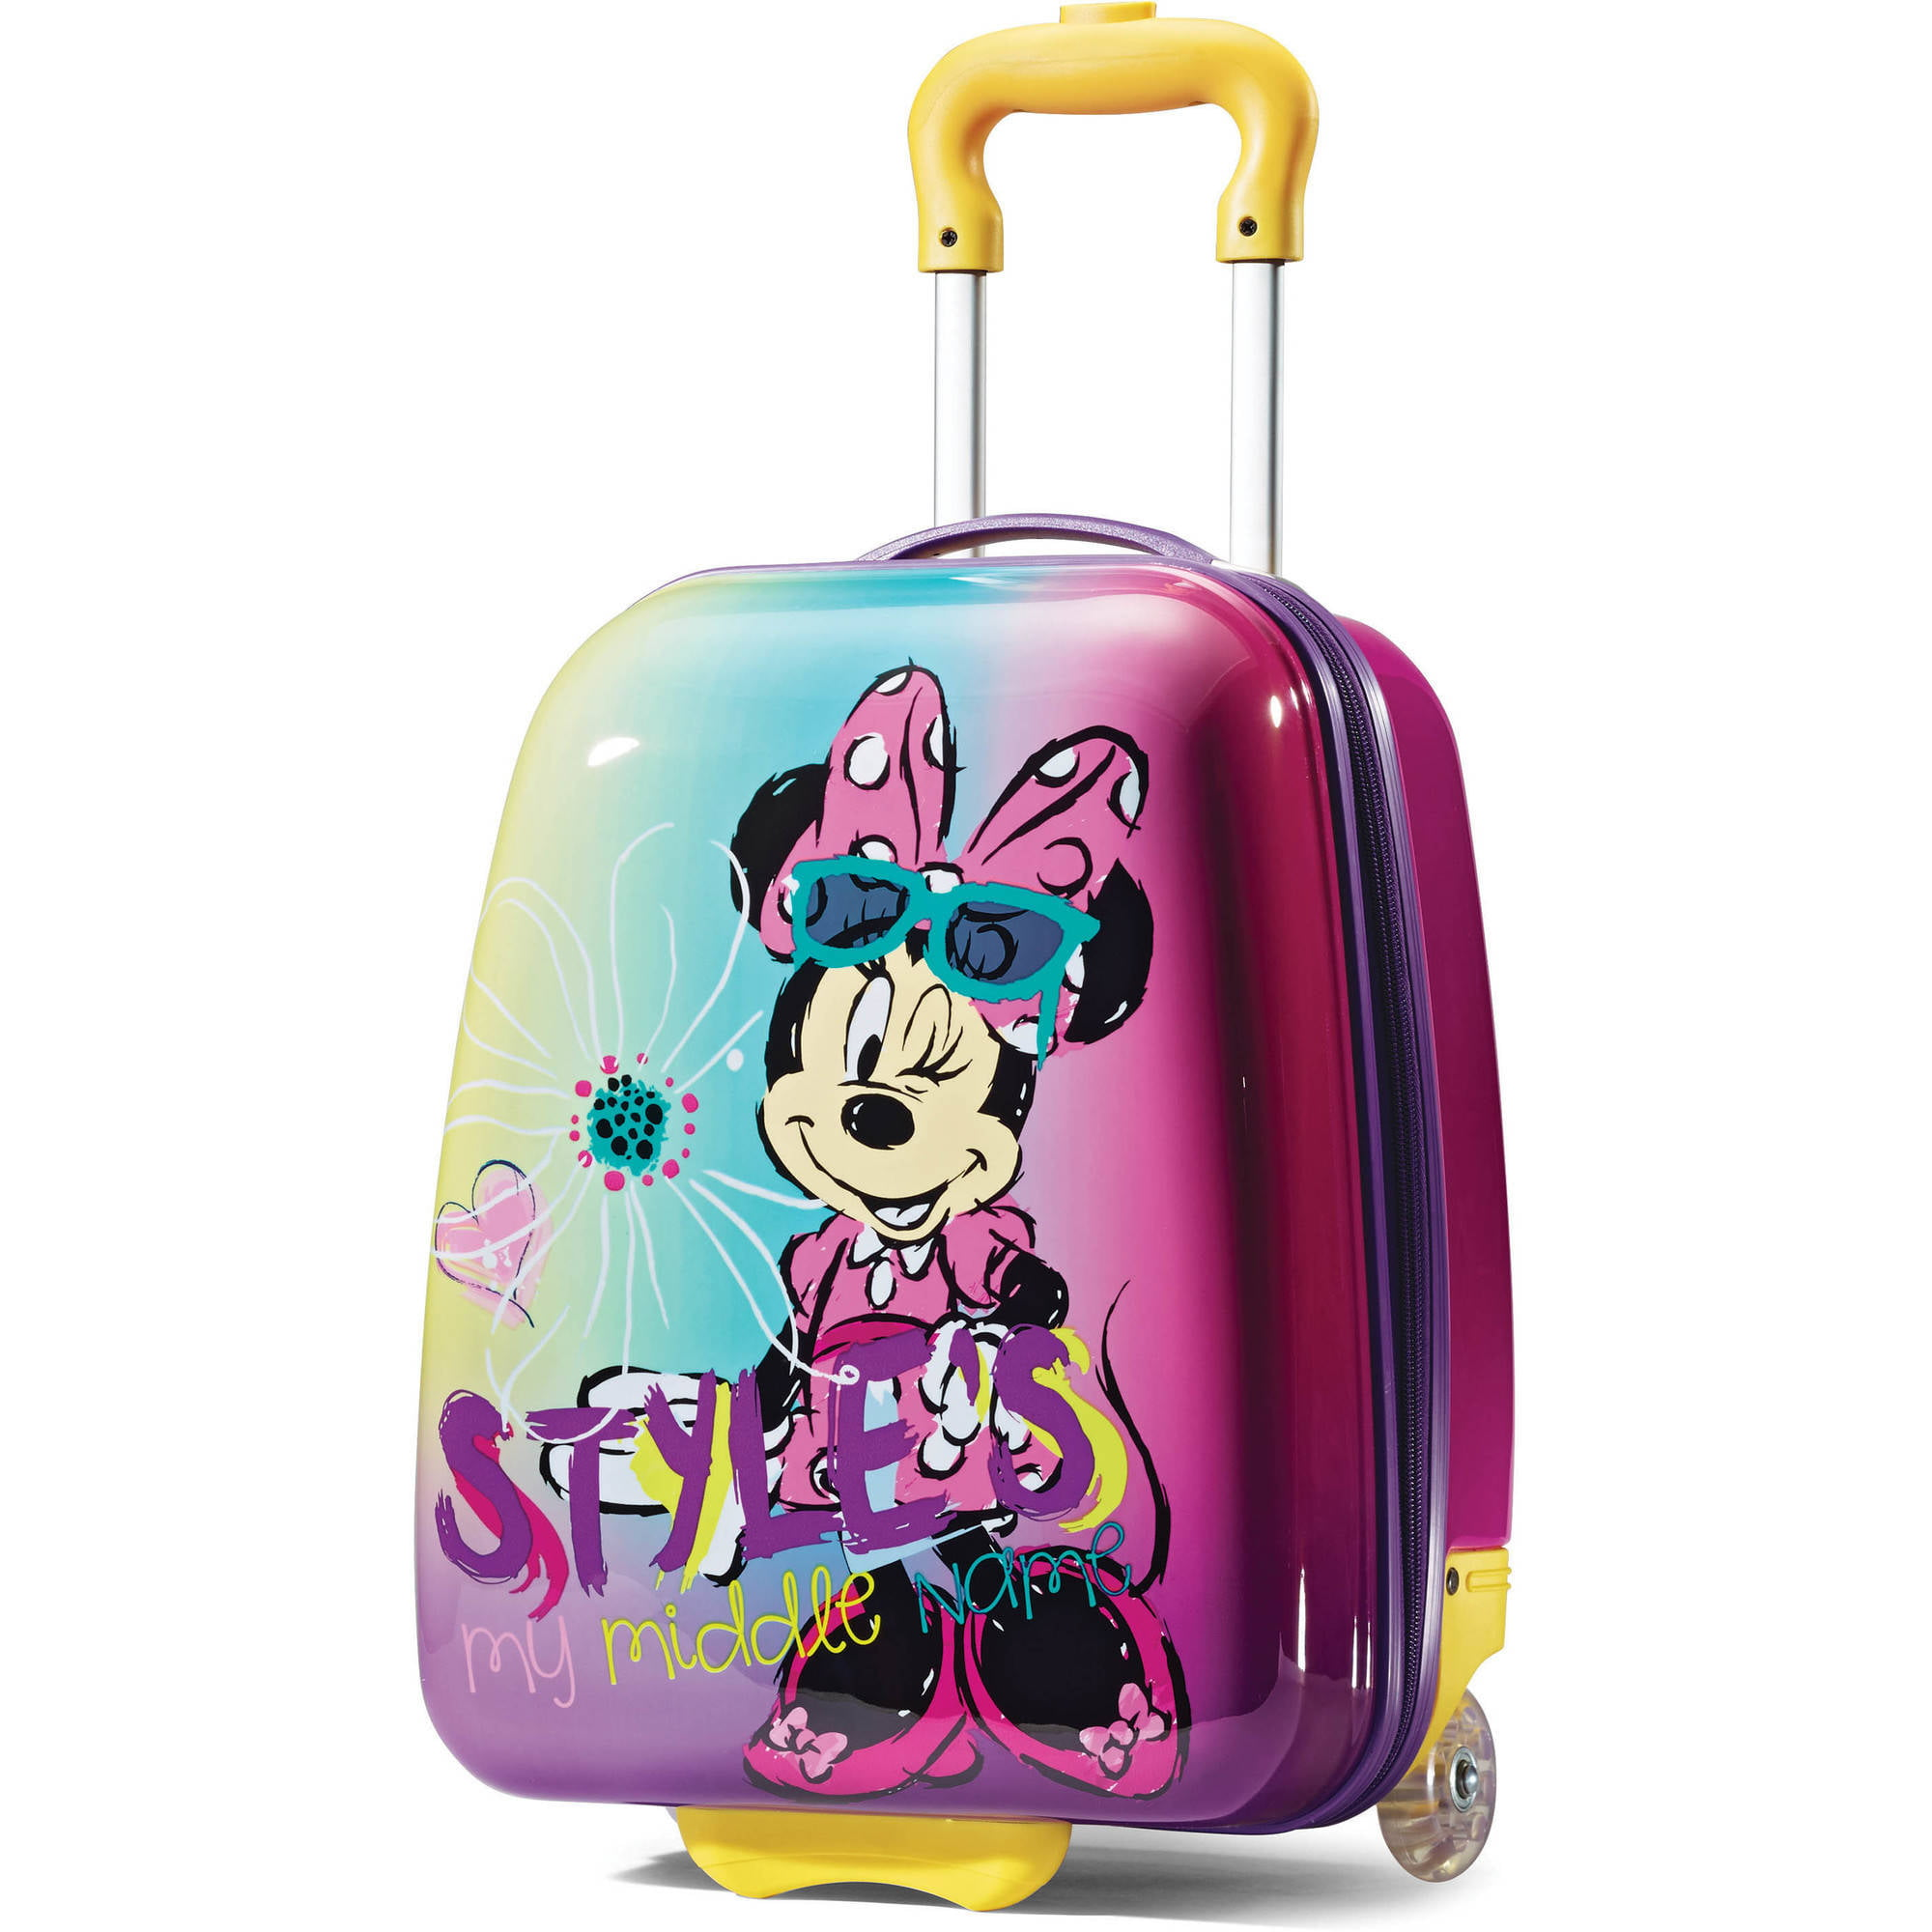 Kids' Luggage - Walmart.com